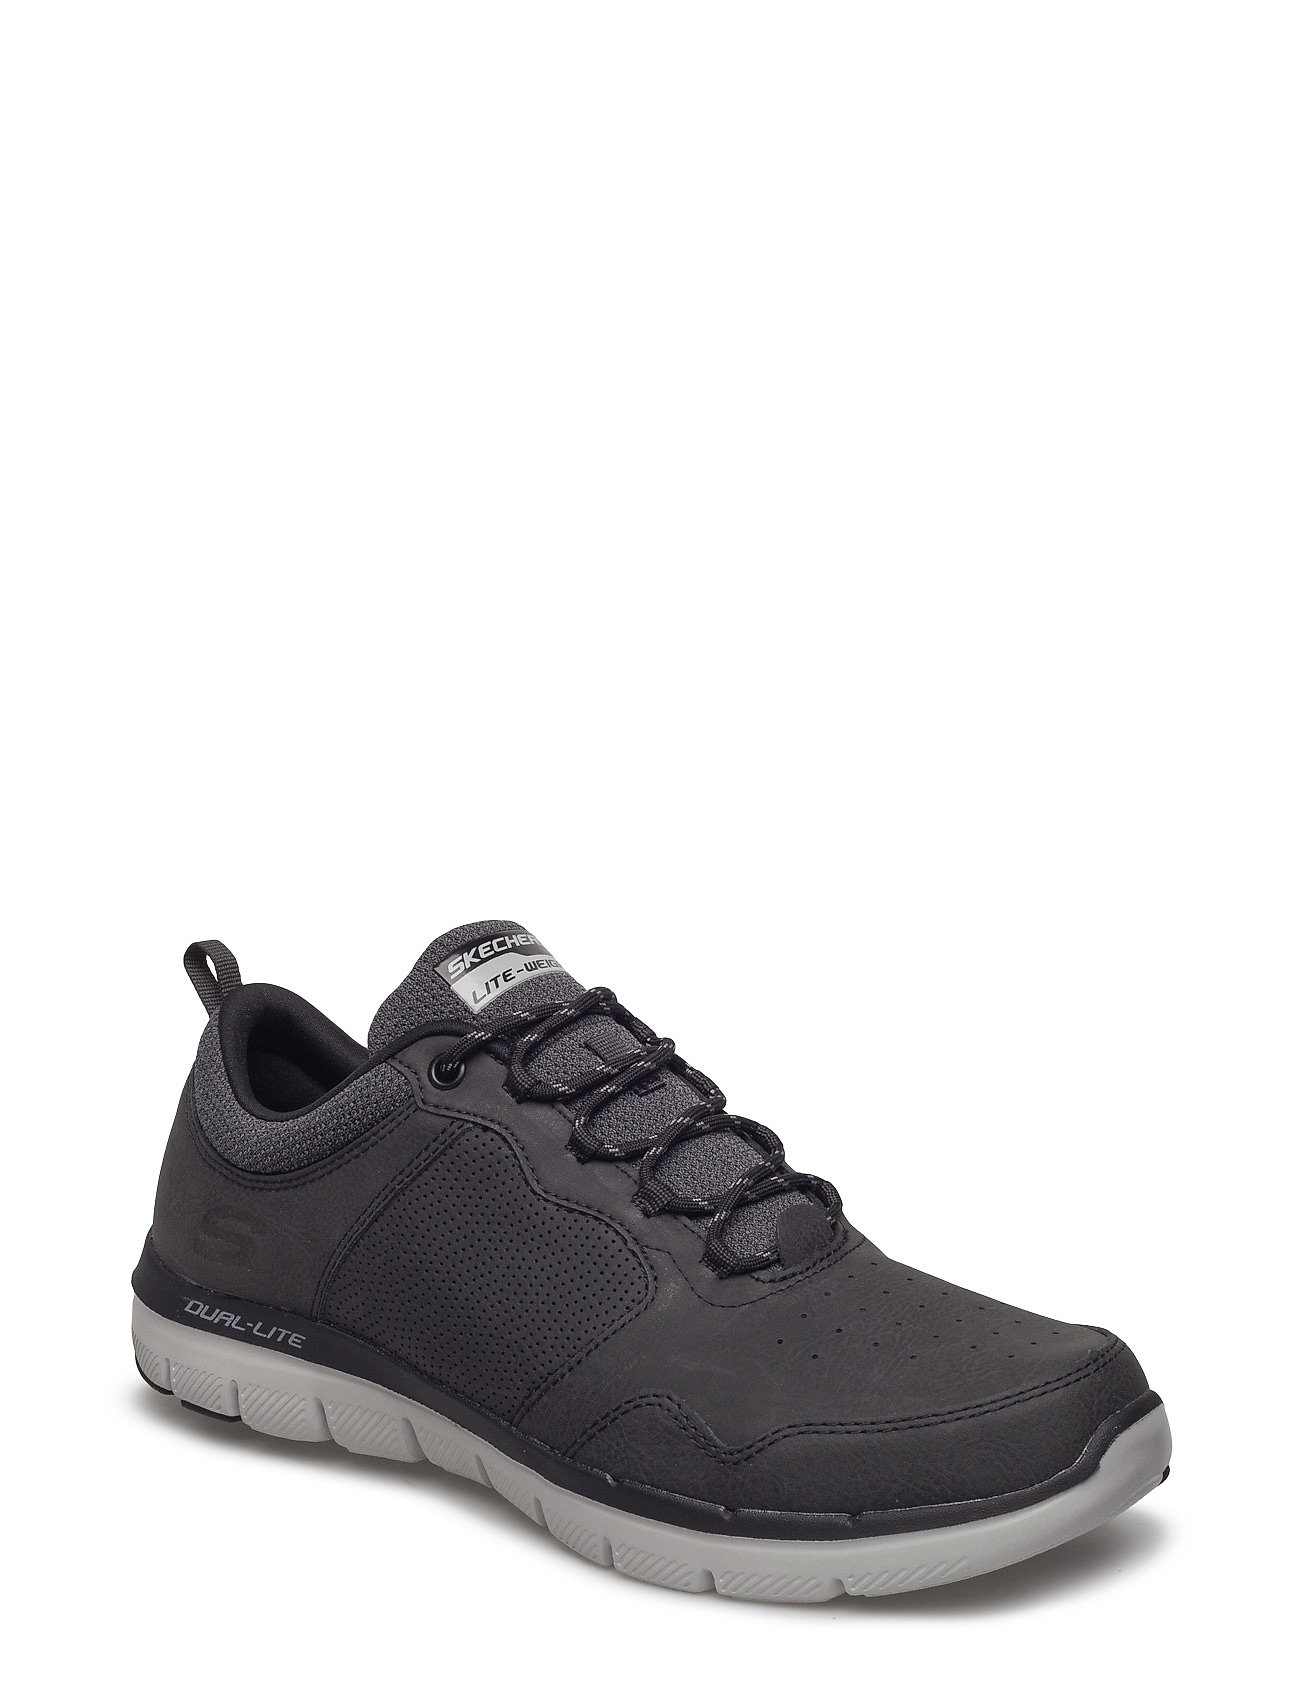 Skechers Mens Flex Advantage 2.0 - Dali Låga Sneakers Svart Skechers